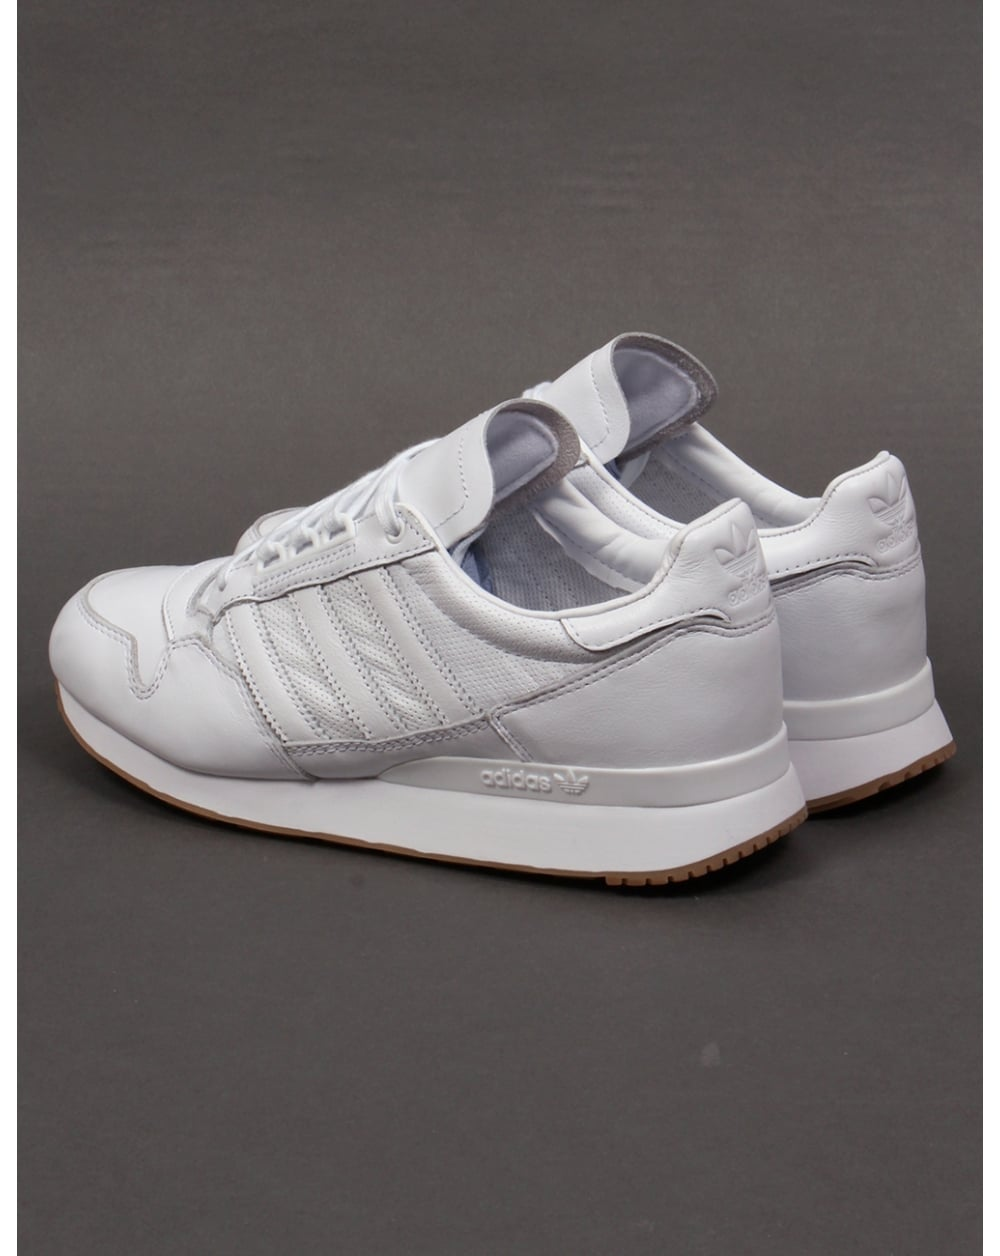 adidas zx 500 og leather trainers white white originals. Black Bedroom Furniture Sets. Home Design Ideas